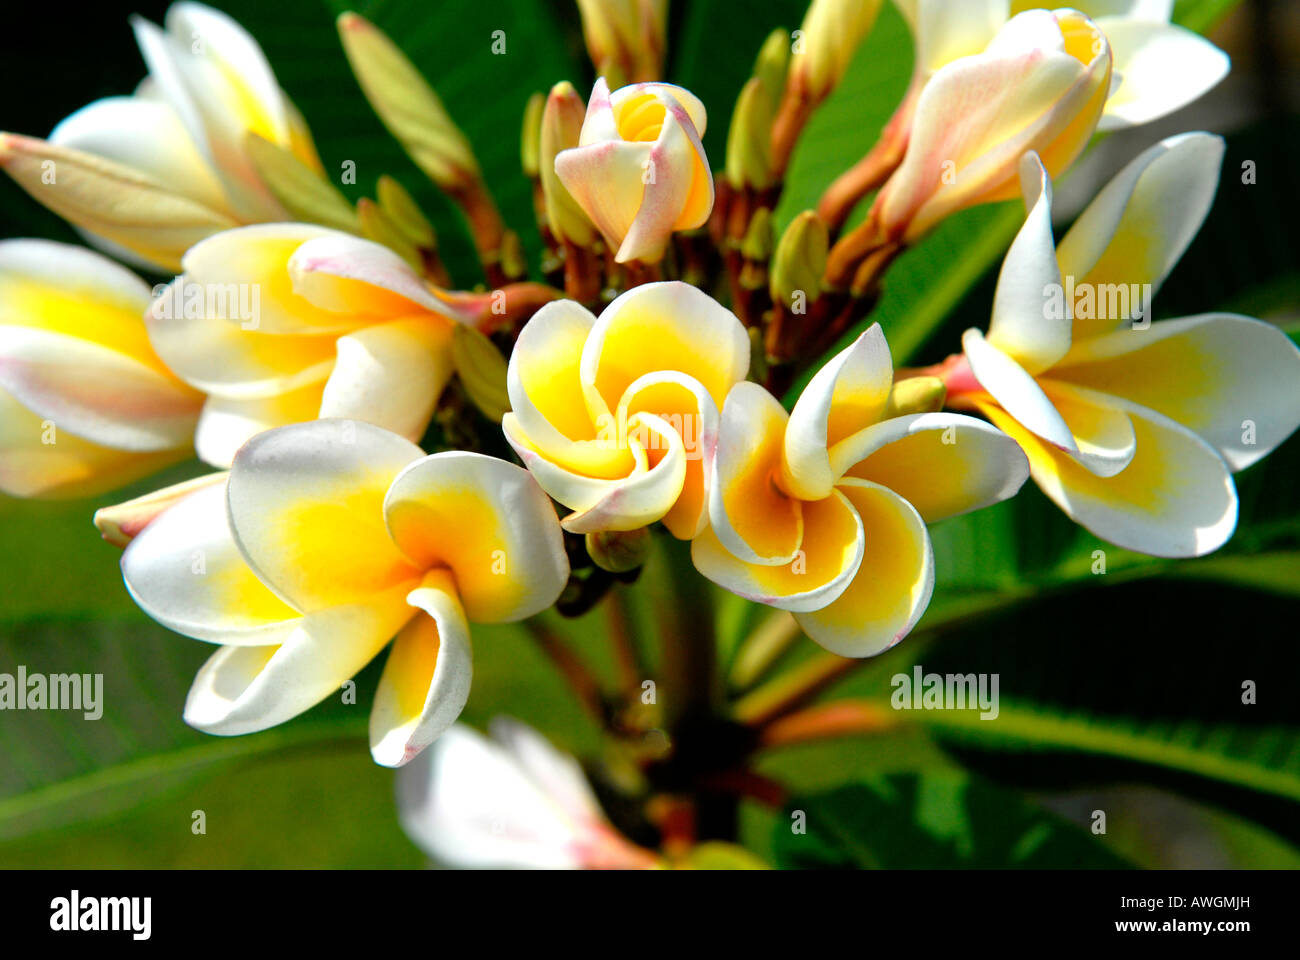 Vietnam Danang Museum of Champa Sculpture garden , close up of beautiful exotic white and yellow flowering bush - Stock Image